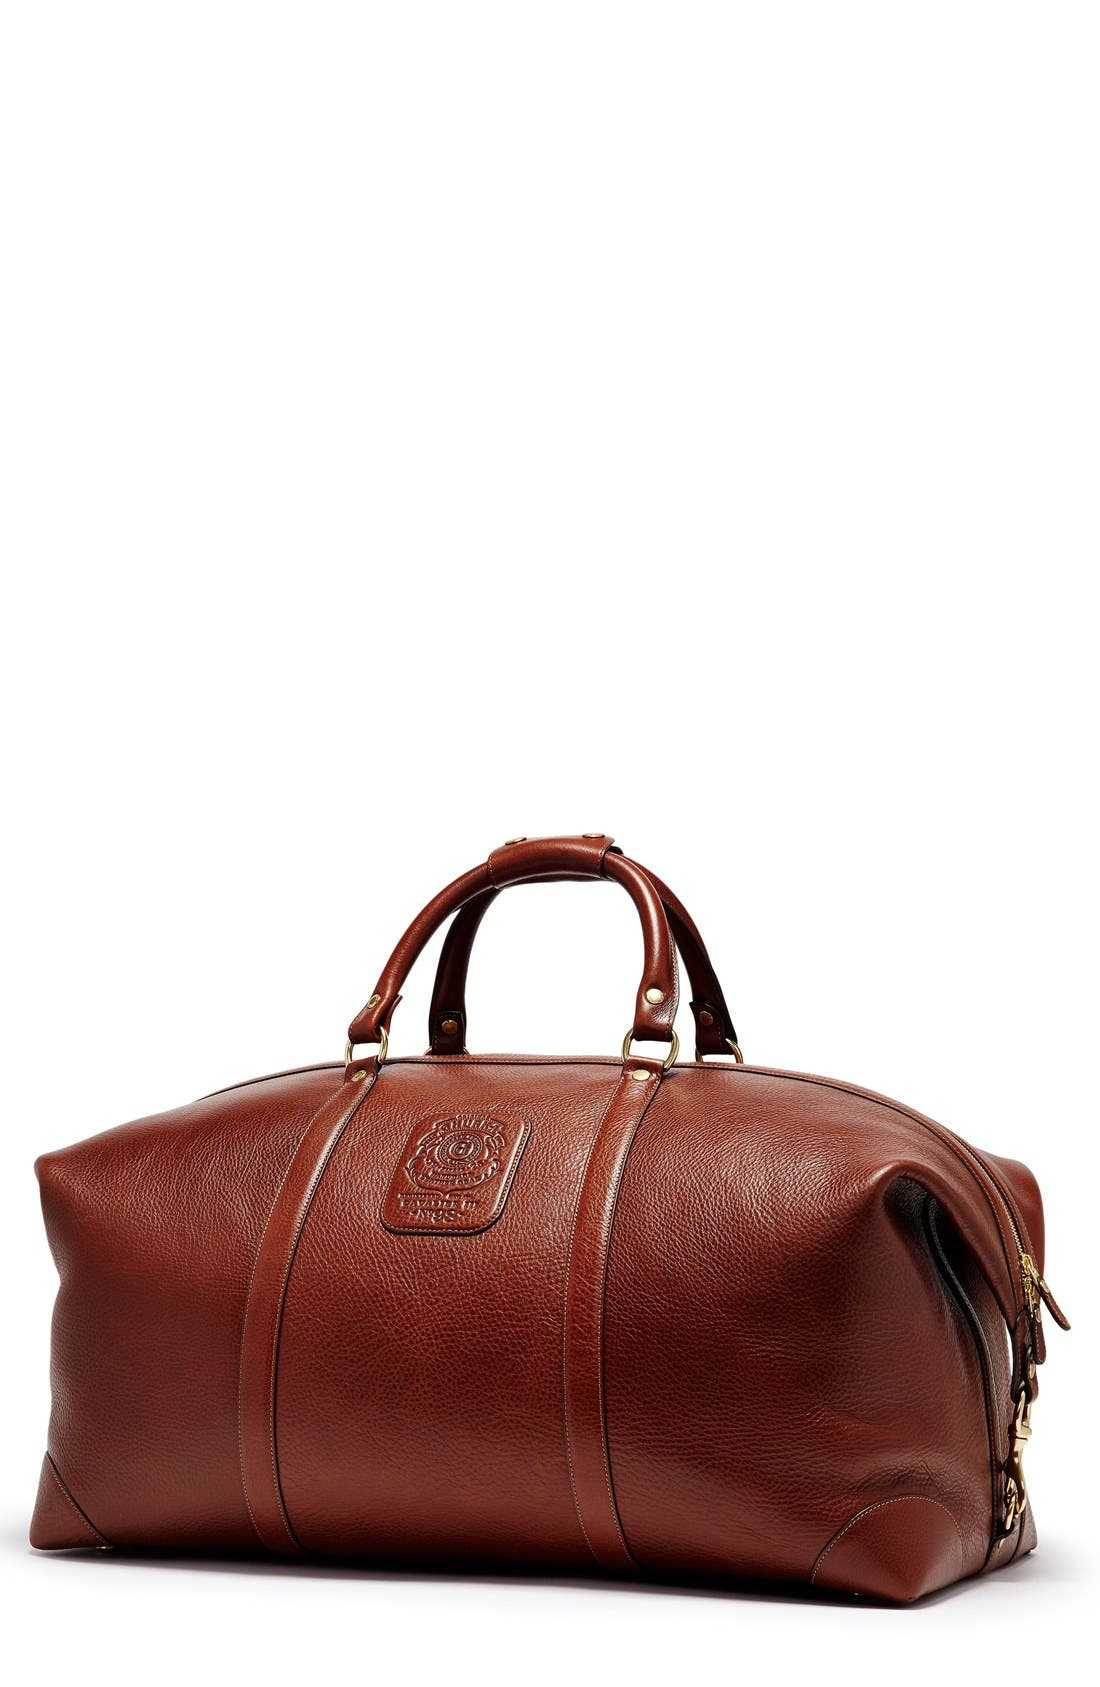 Ghurka 'Cavalier III' Leather Duffel Bag